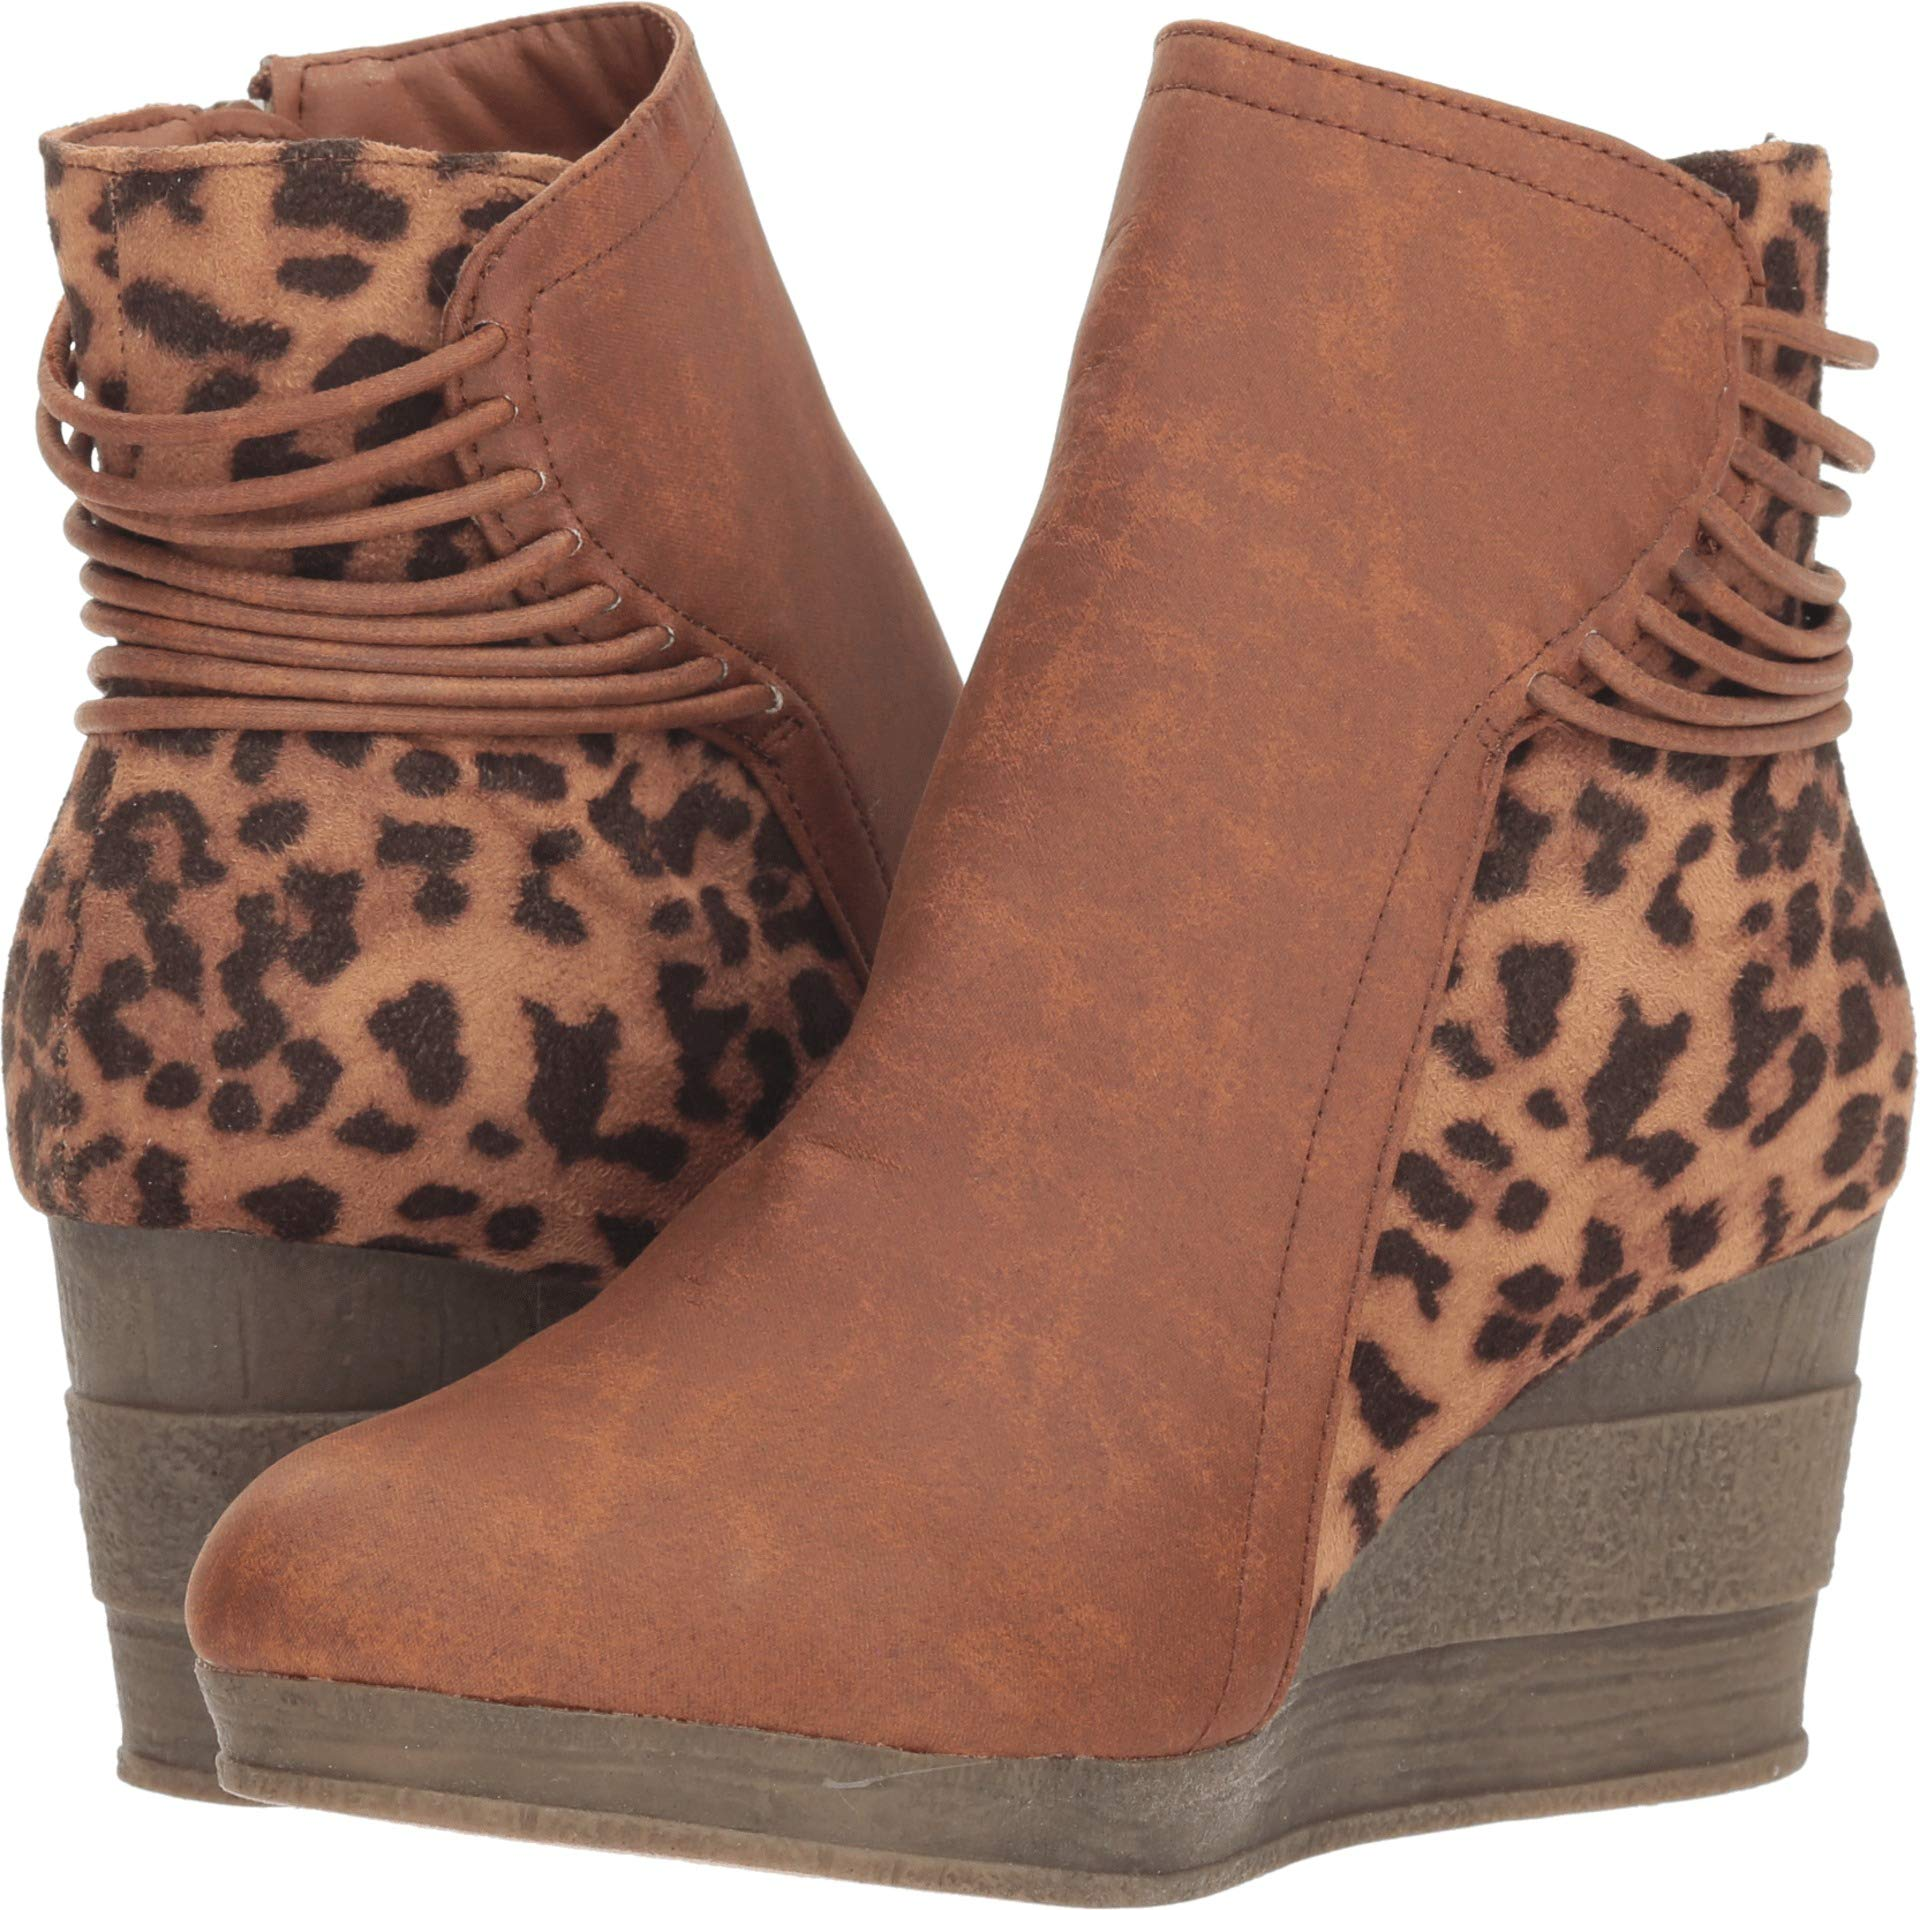 Sbicca Women's Alexandria Tan/Leopard 8.5 M US M by Sbicca (Image #1)